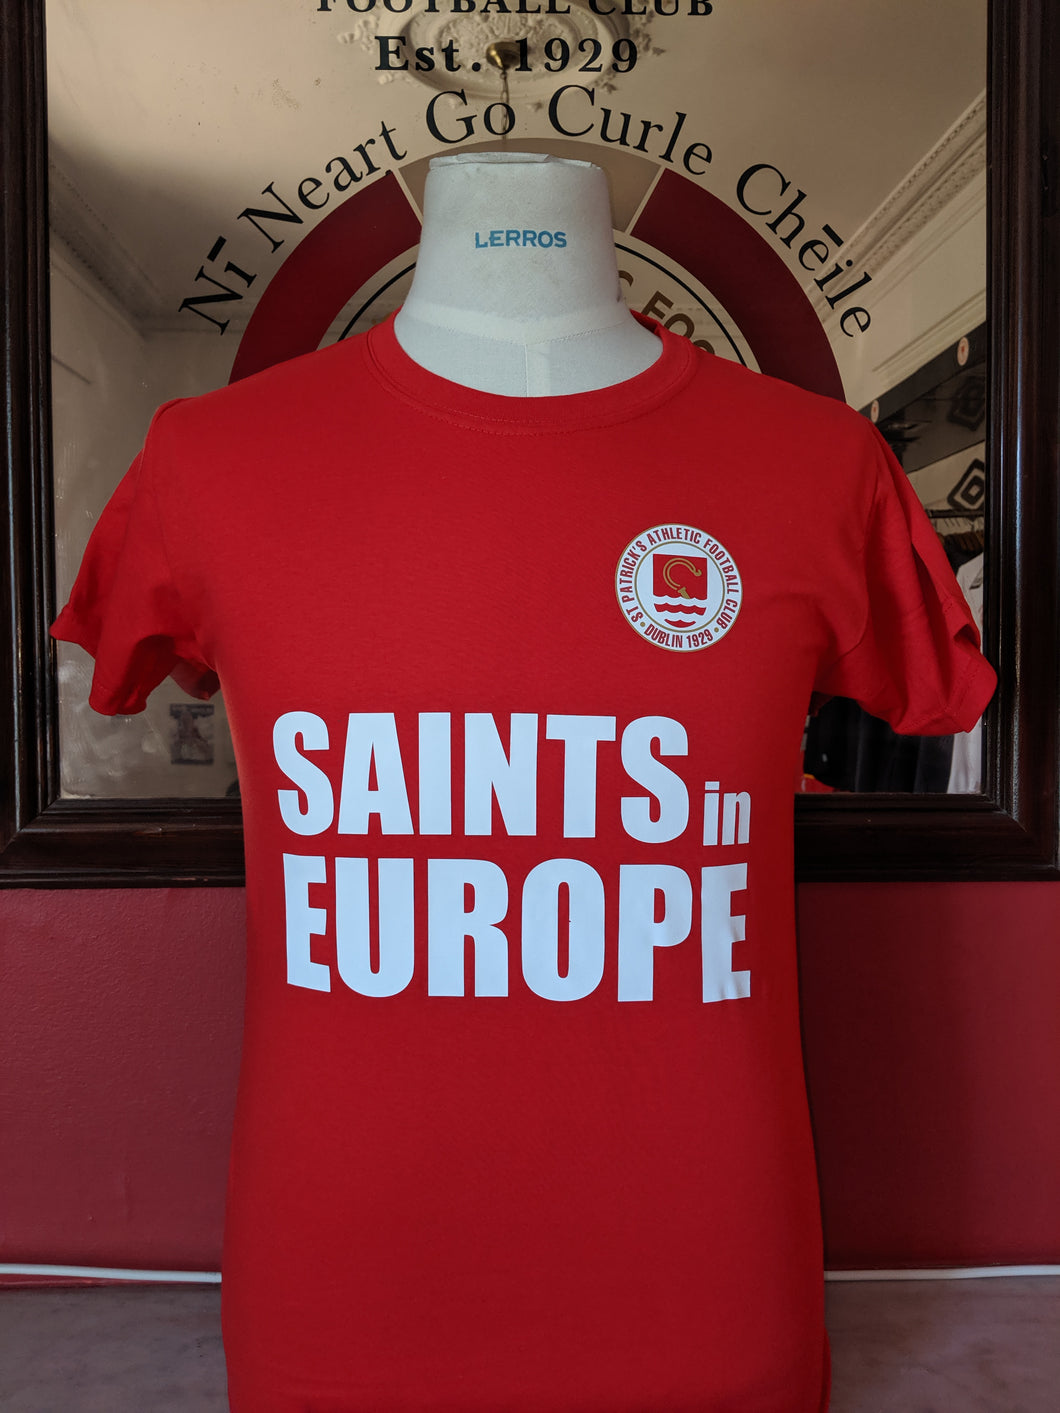 Saints in Europe Tee - Red - Adults